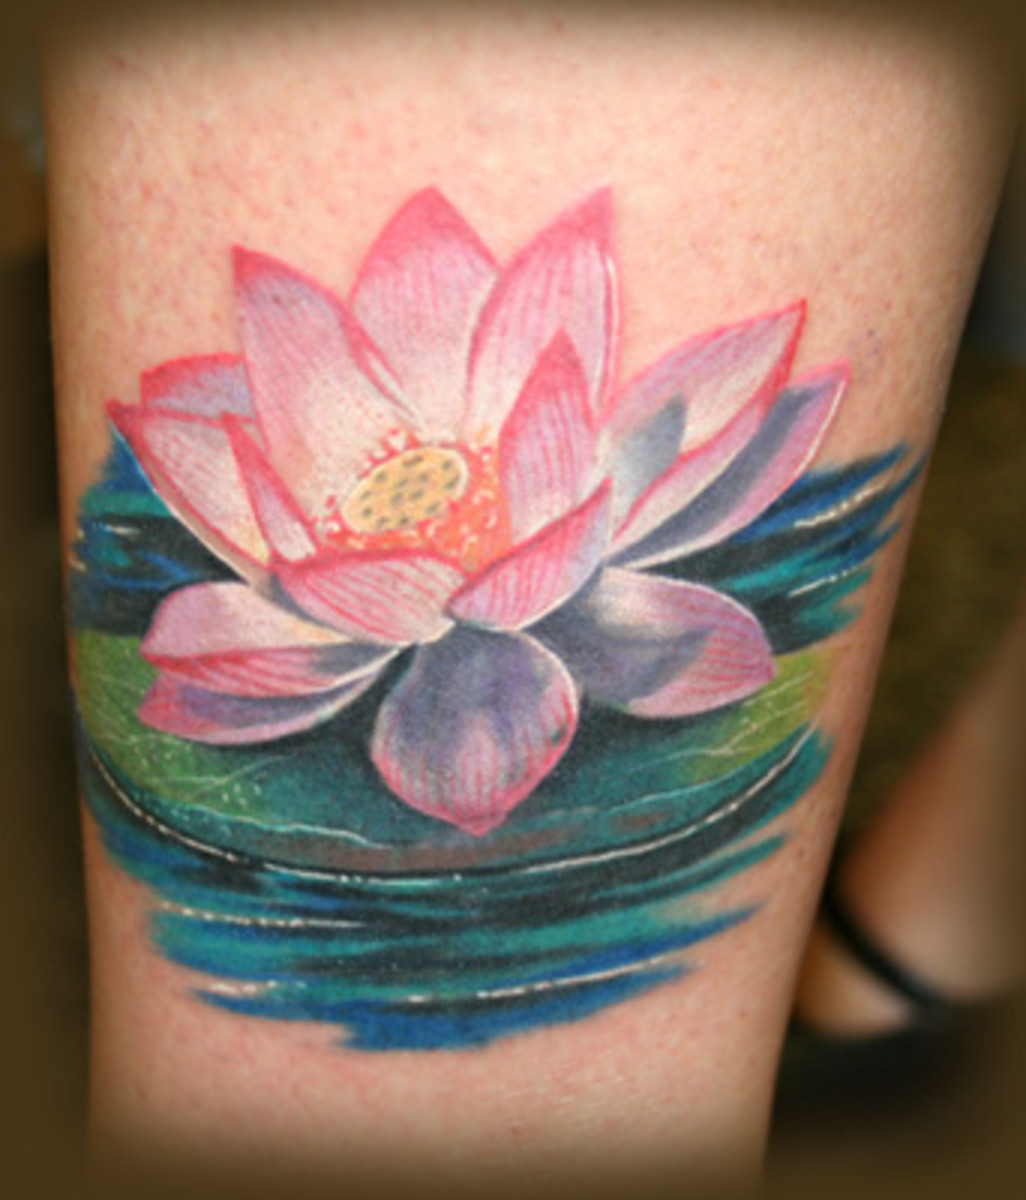 Lotus Flower Tattoos, Tribal Tattoo,Cherry Blossom Tattoos, Guardian Angel